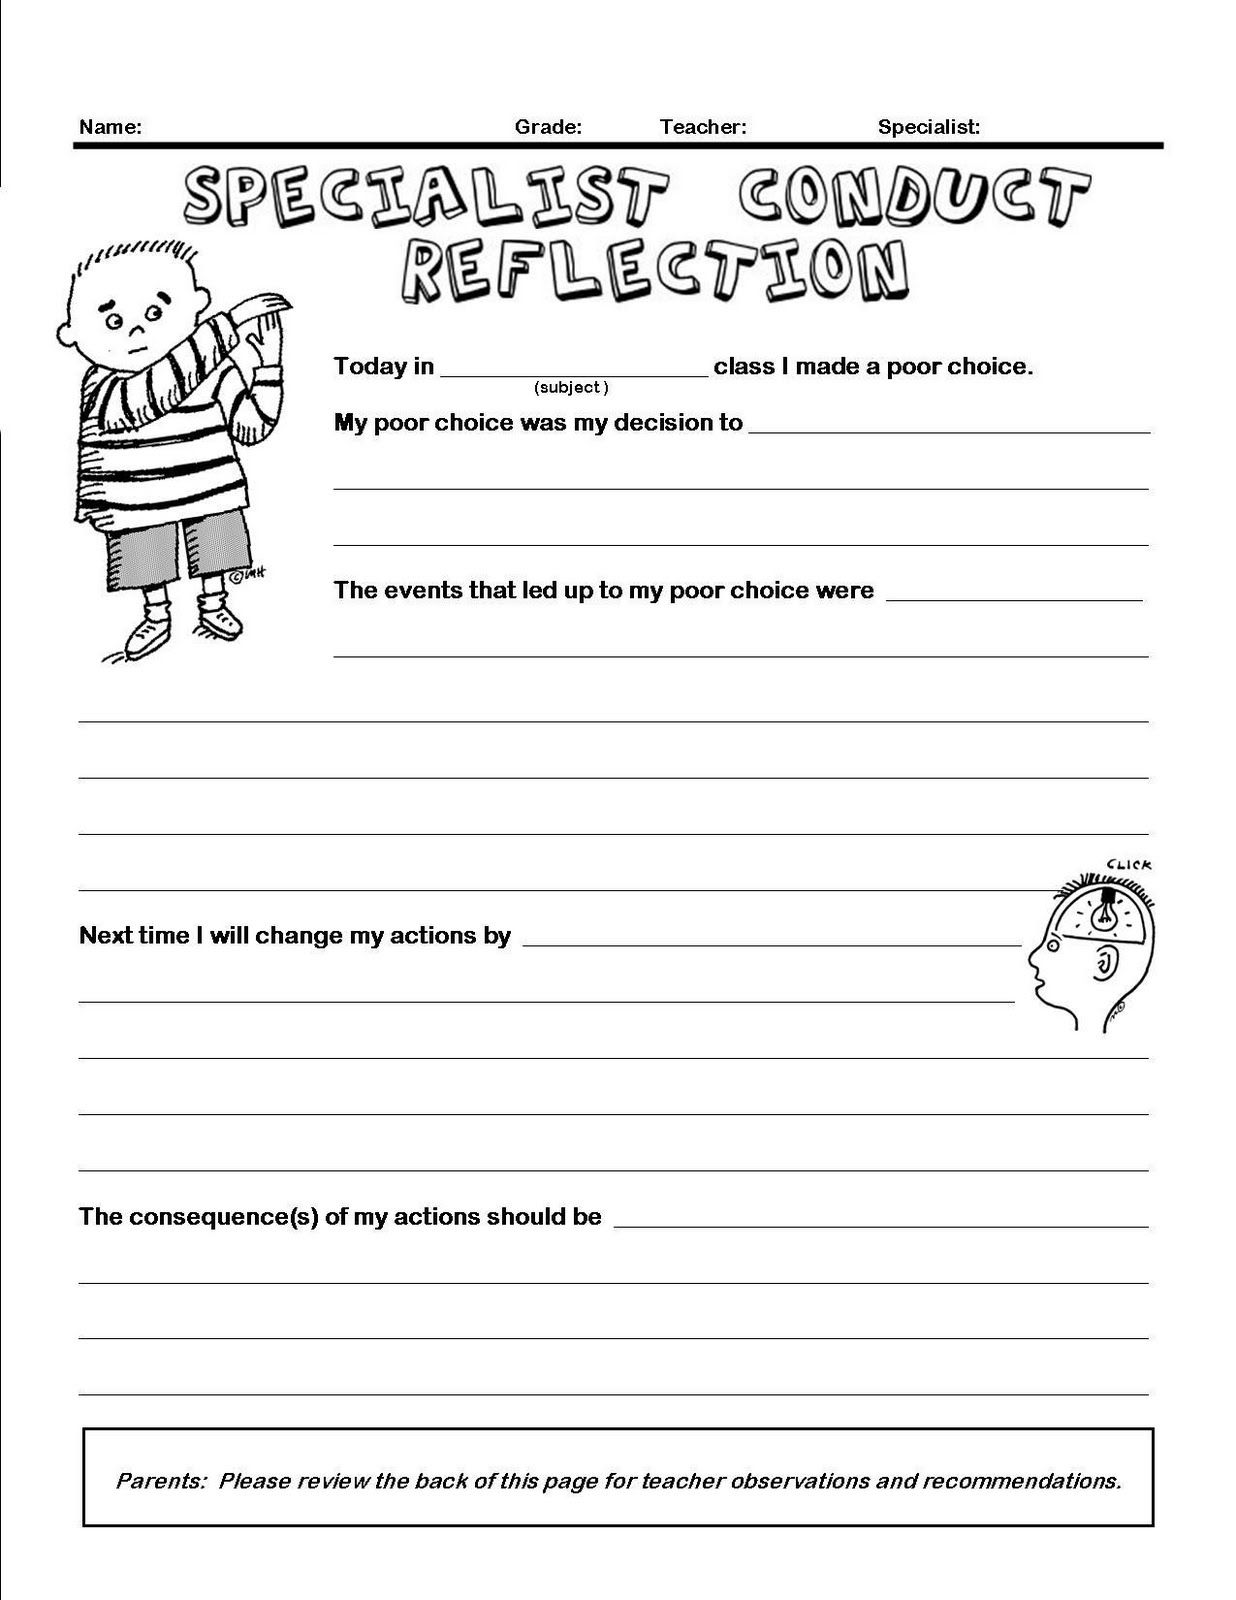 Classroom Management Conduct Reflection Form